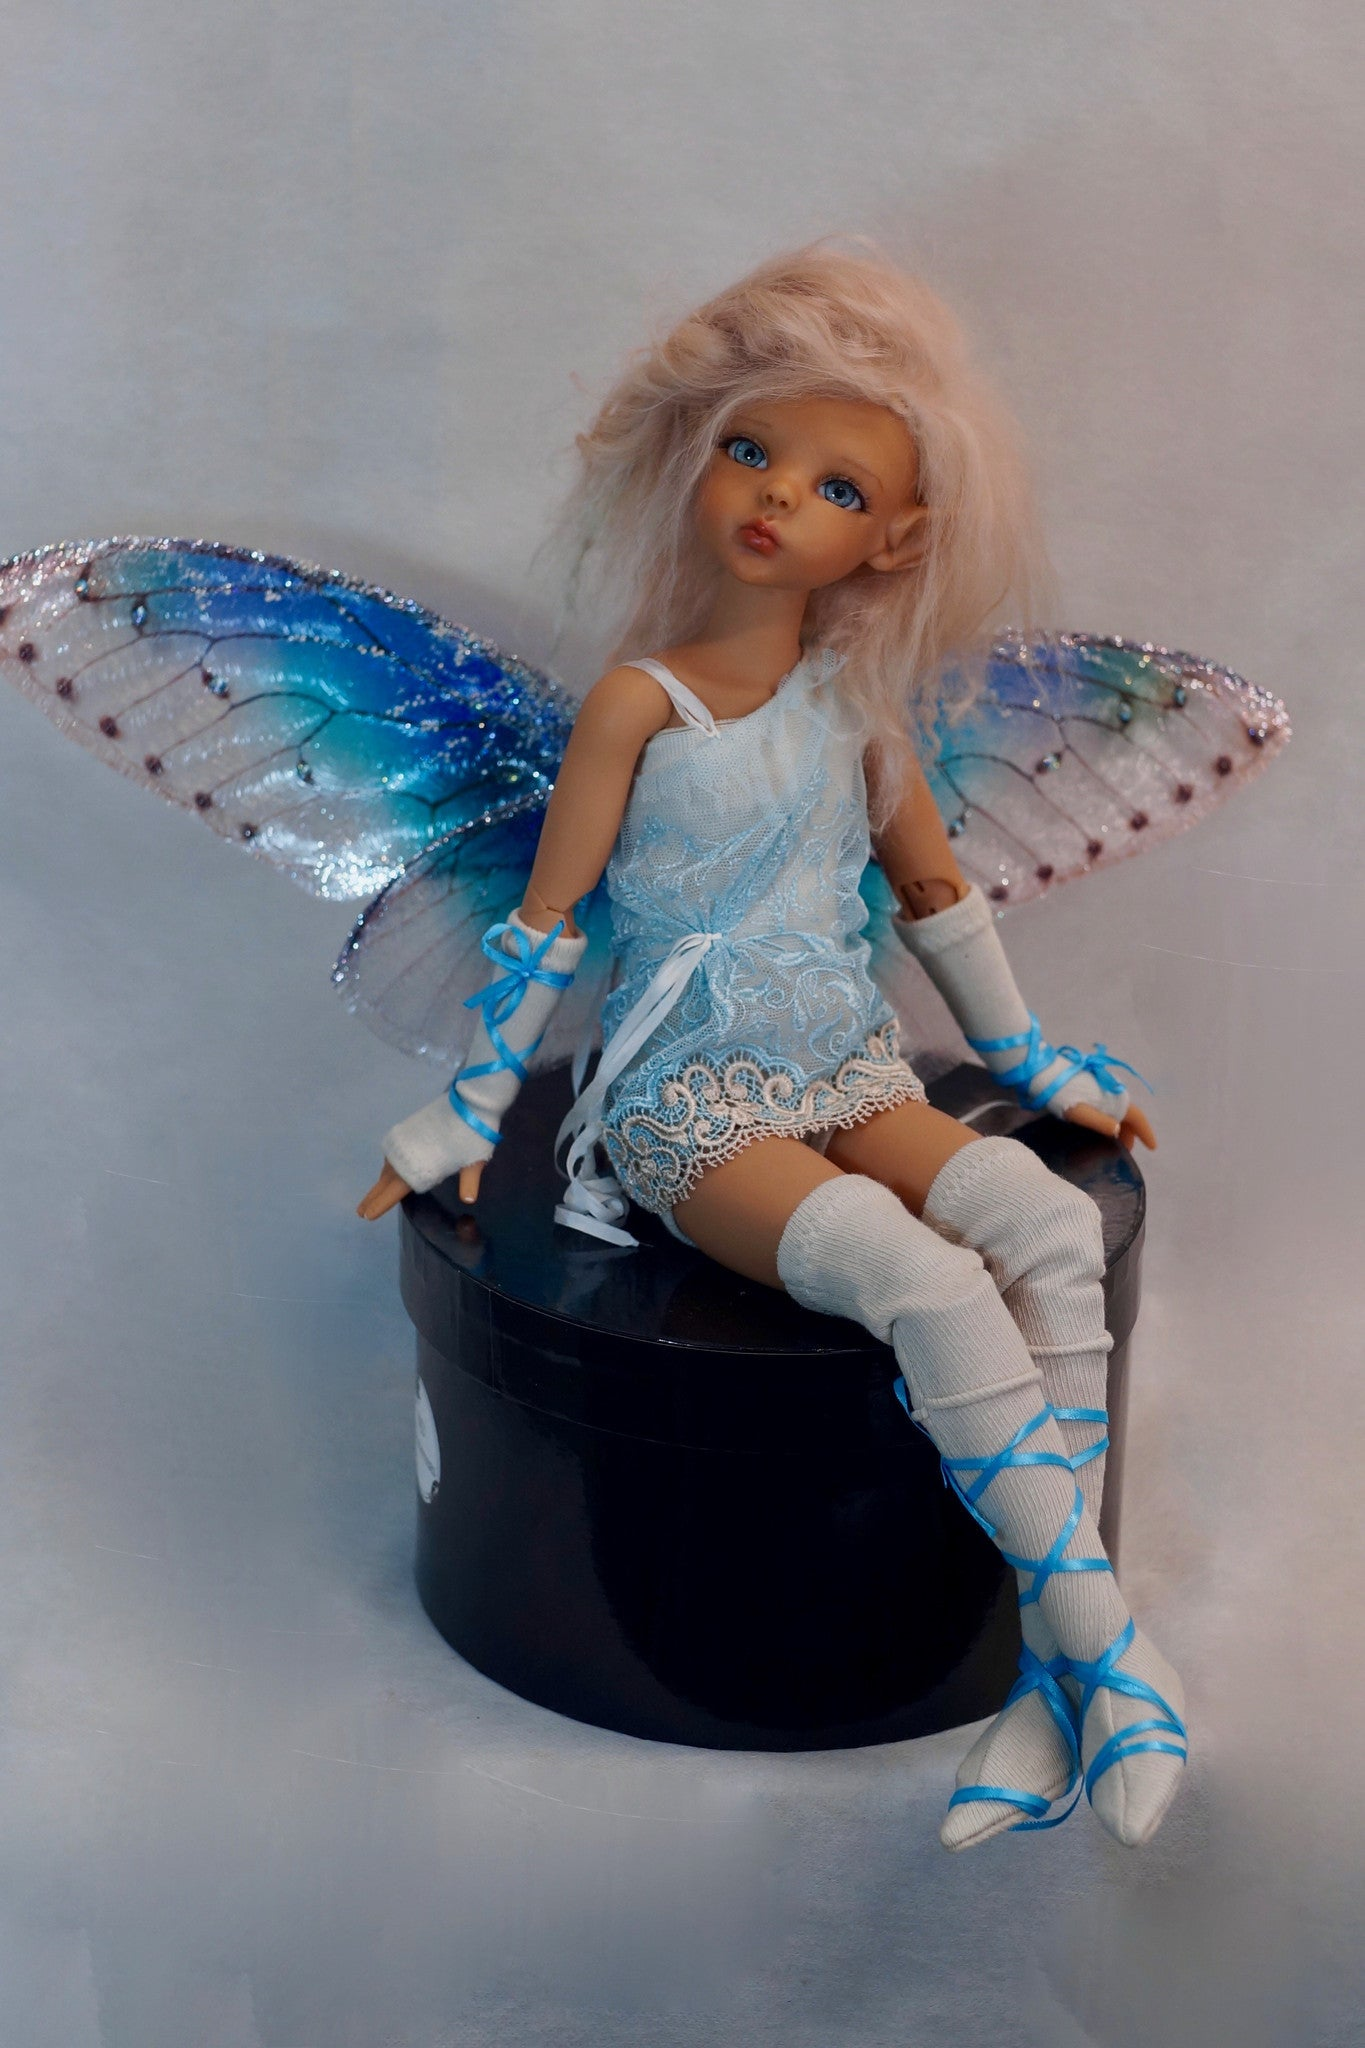 Blue Fairy by Bo Bergemann - Sold